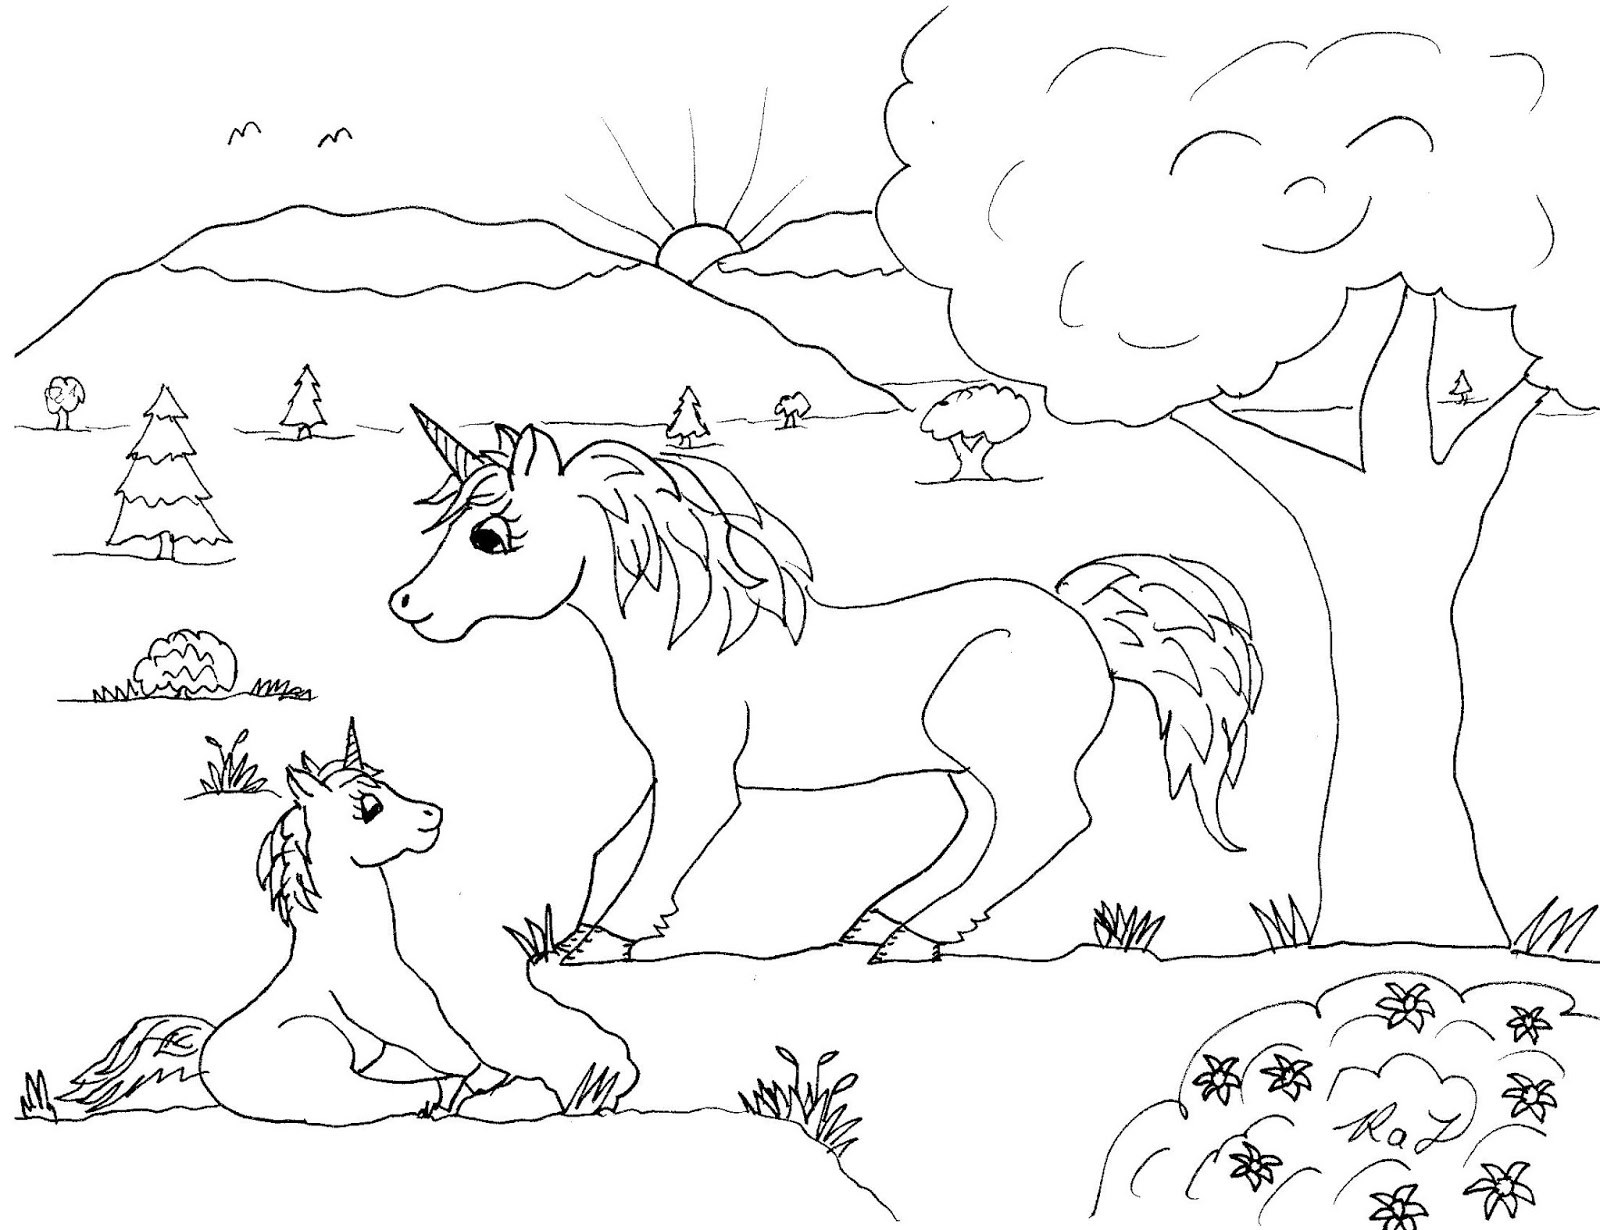 Robin S Great Coloring Pages Two More Unicorn Drawings